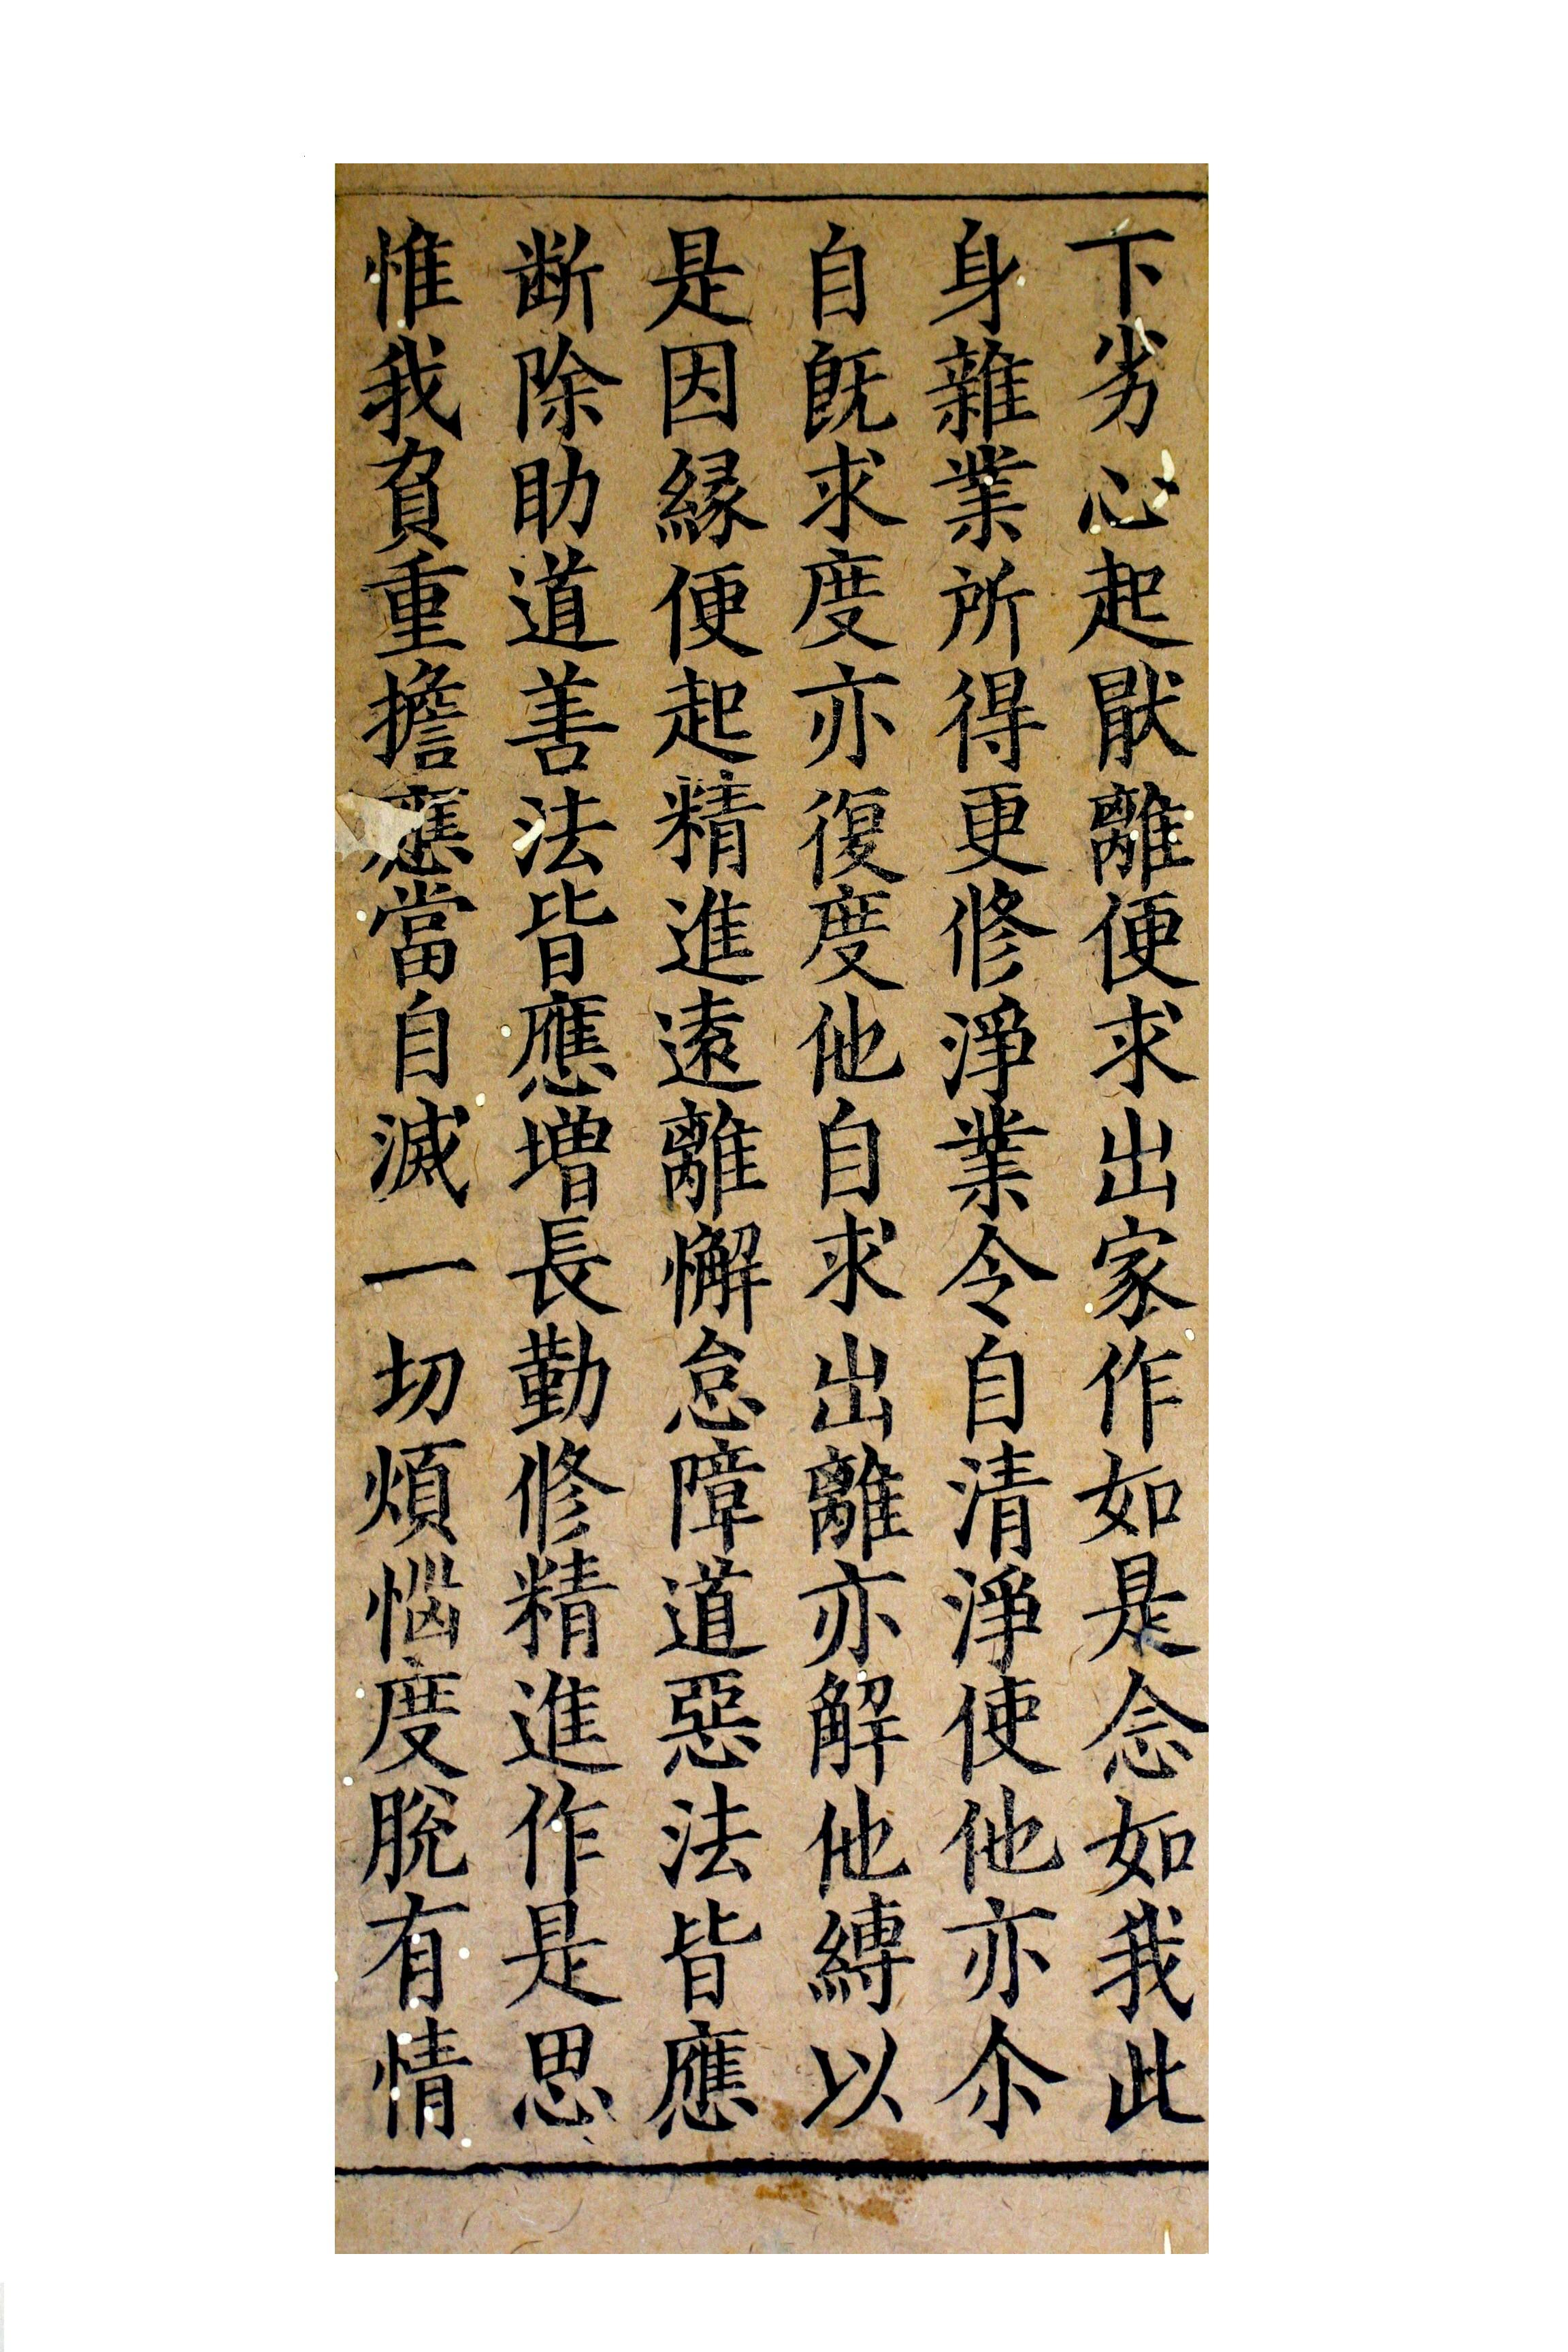 What Is the Buddhist Holy Book Called?